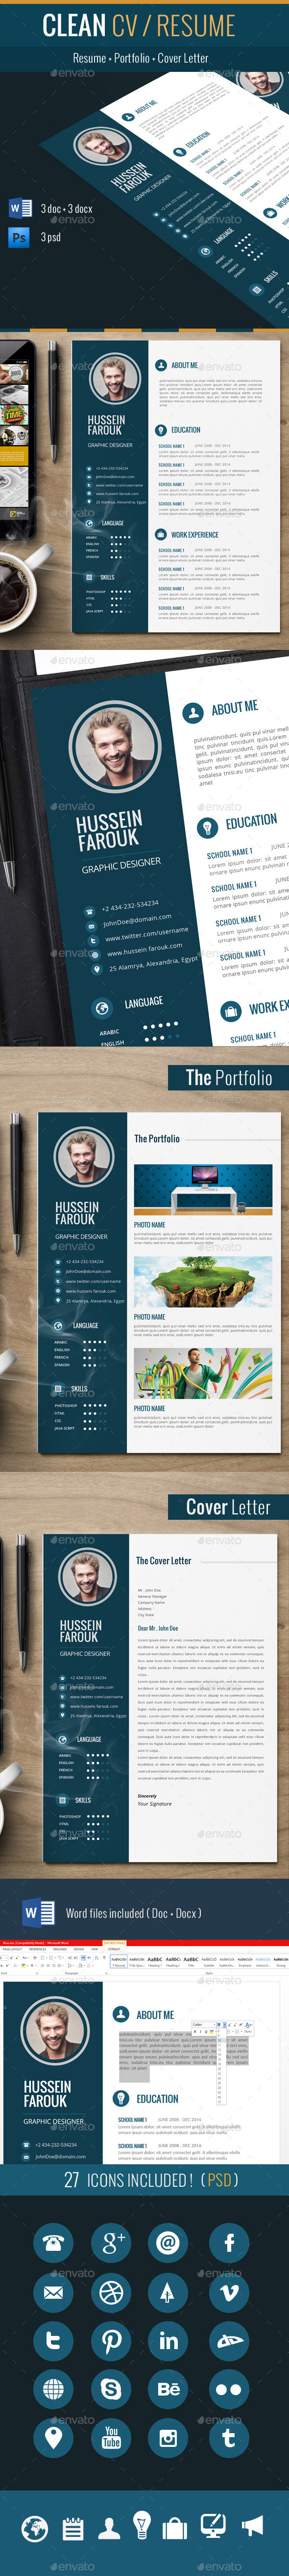 GraphicRiver Clean Cv Resume 9854616